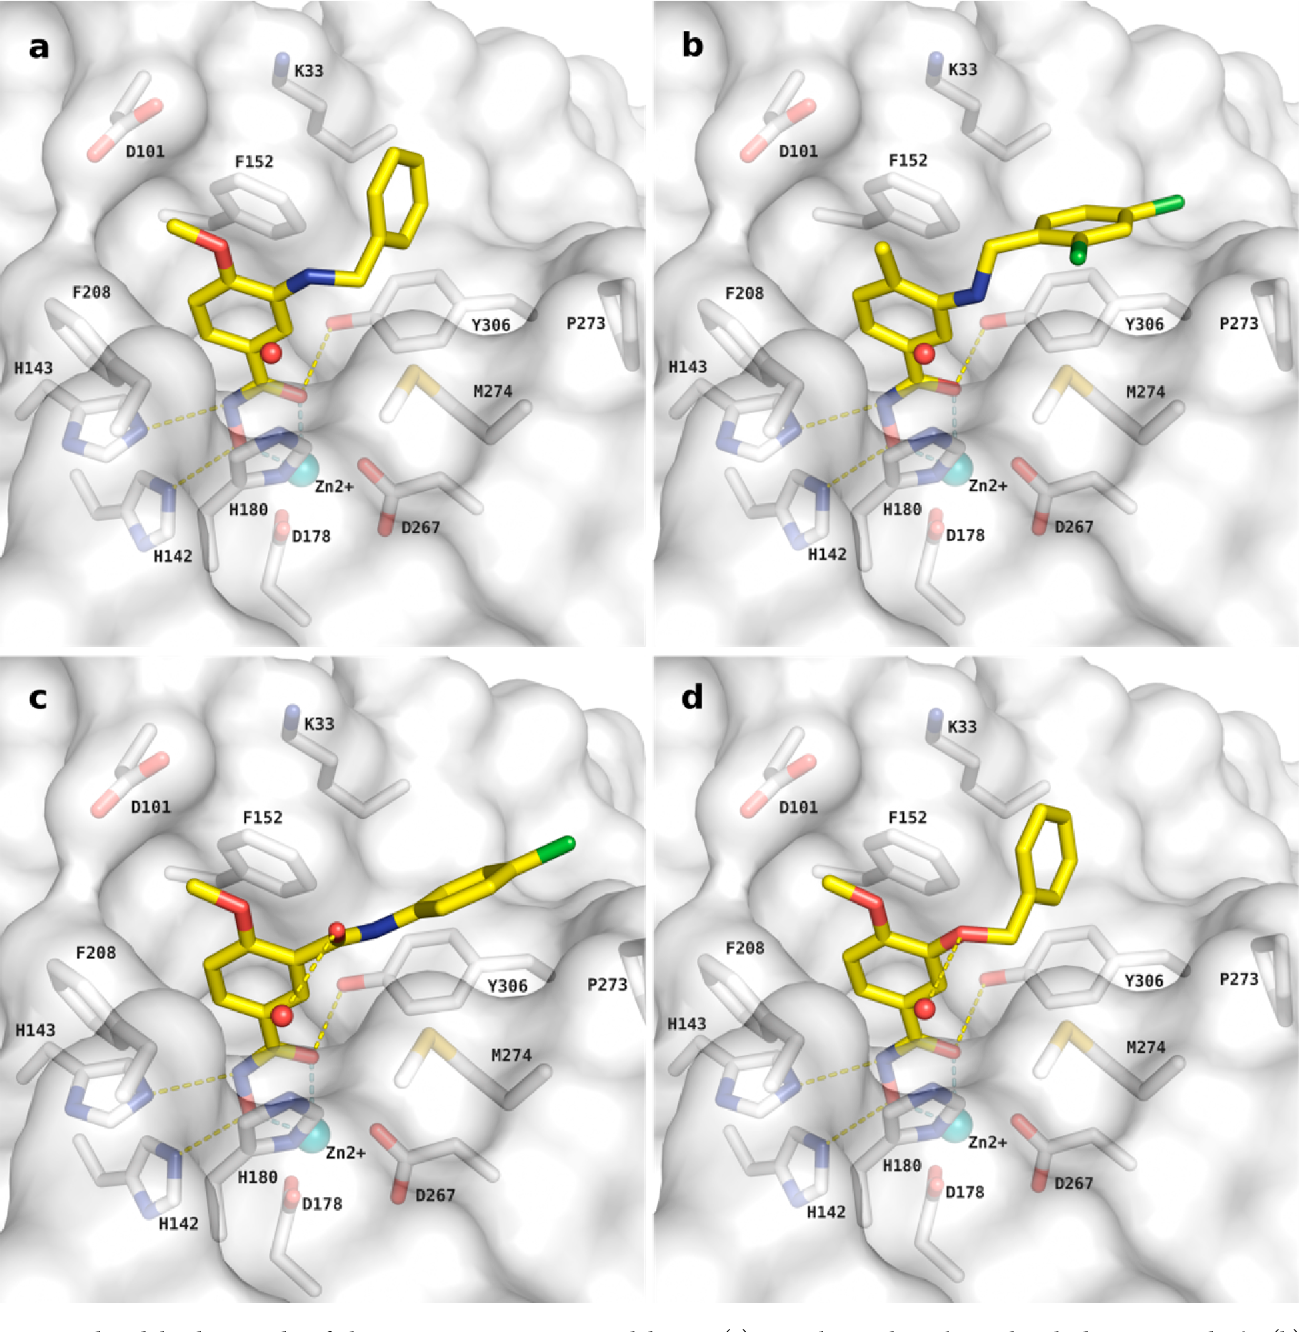 Figure 5. Predicted binding mode of the most potent HDAC8 inhibitors: (a) 4-methoxy-3-benzylaminobenzhydroxamic acid 8b, (b) 2,4- dichlorobenzylaminobenzhydroxamic acid derivative 8f, (c) inverted amide derivative 12b, and (d) 3-benzyloxybenzhydroxamic acid derivative 20a in human HDAC8. Ligands are colored in yellow, side chains of active site residues are shown as white sticks, the zinc ion is depicted as cyan ball, while the cocrystallized water molecule is shown as red balls. Hydrogen bonds are shown as yellow dashed lines, and coordination of the zinc ion is shown as pale-cyan dashed lines.